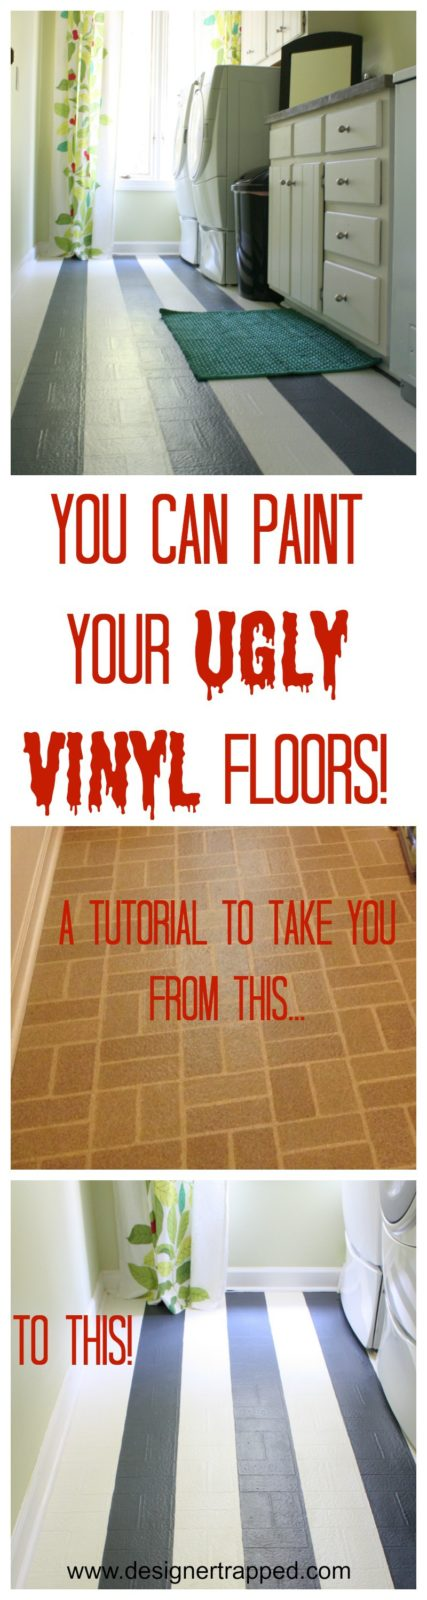 Learn to Paint Vinyl Floors!  A detailed tutorial by Designer Trapped in a Lawyer's Body {www.designertrapped.com}